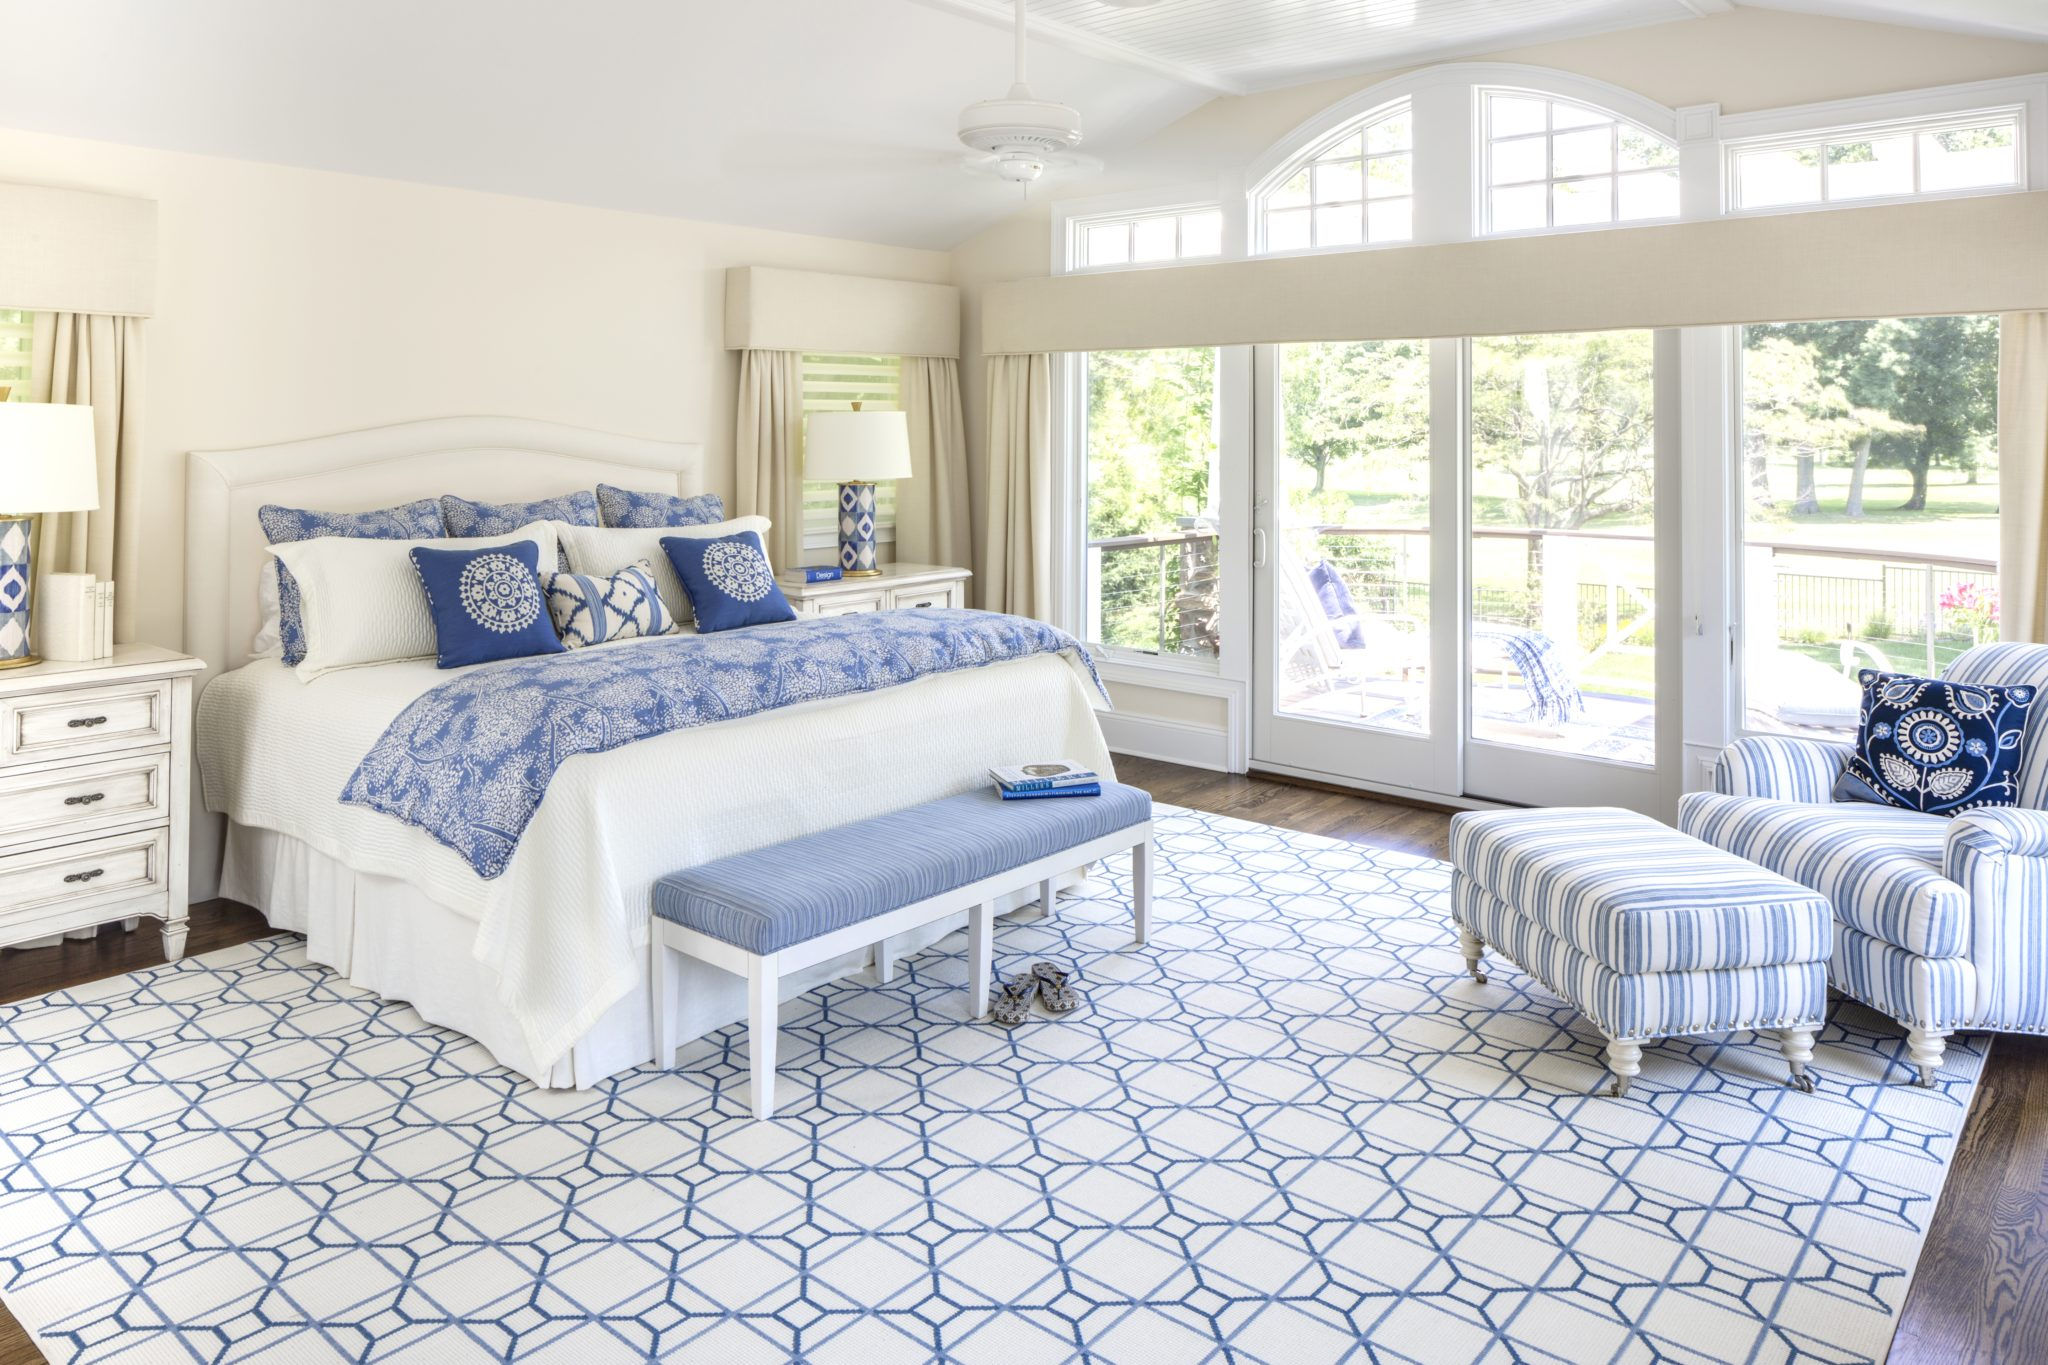 Master bedroom with wall of windows in cool blues by Kim Radovich, Kim E. Courtney Interiors